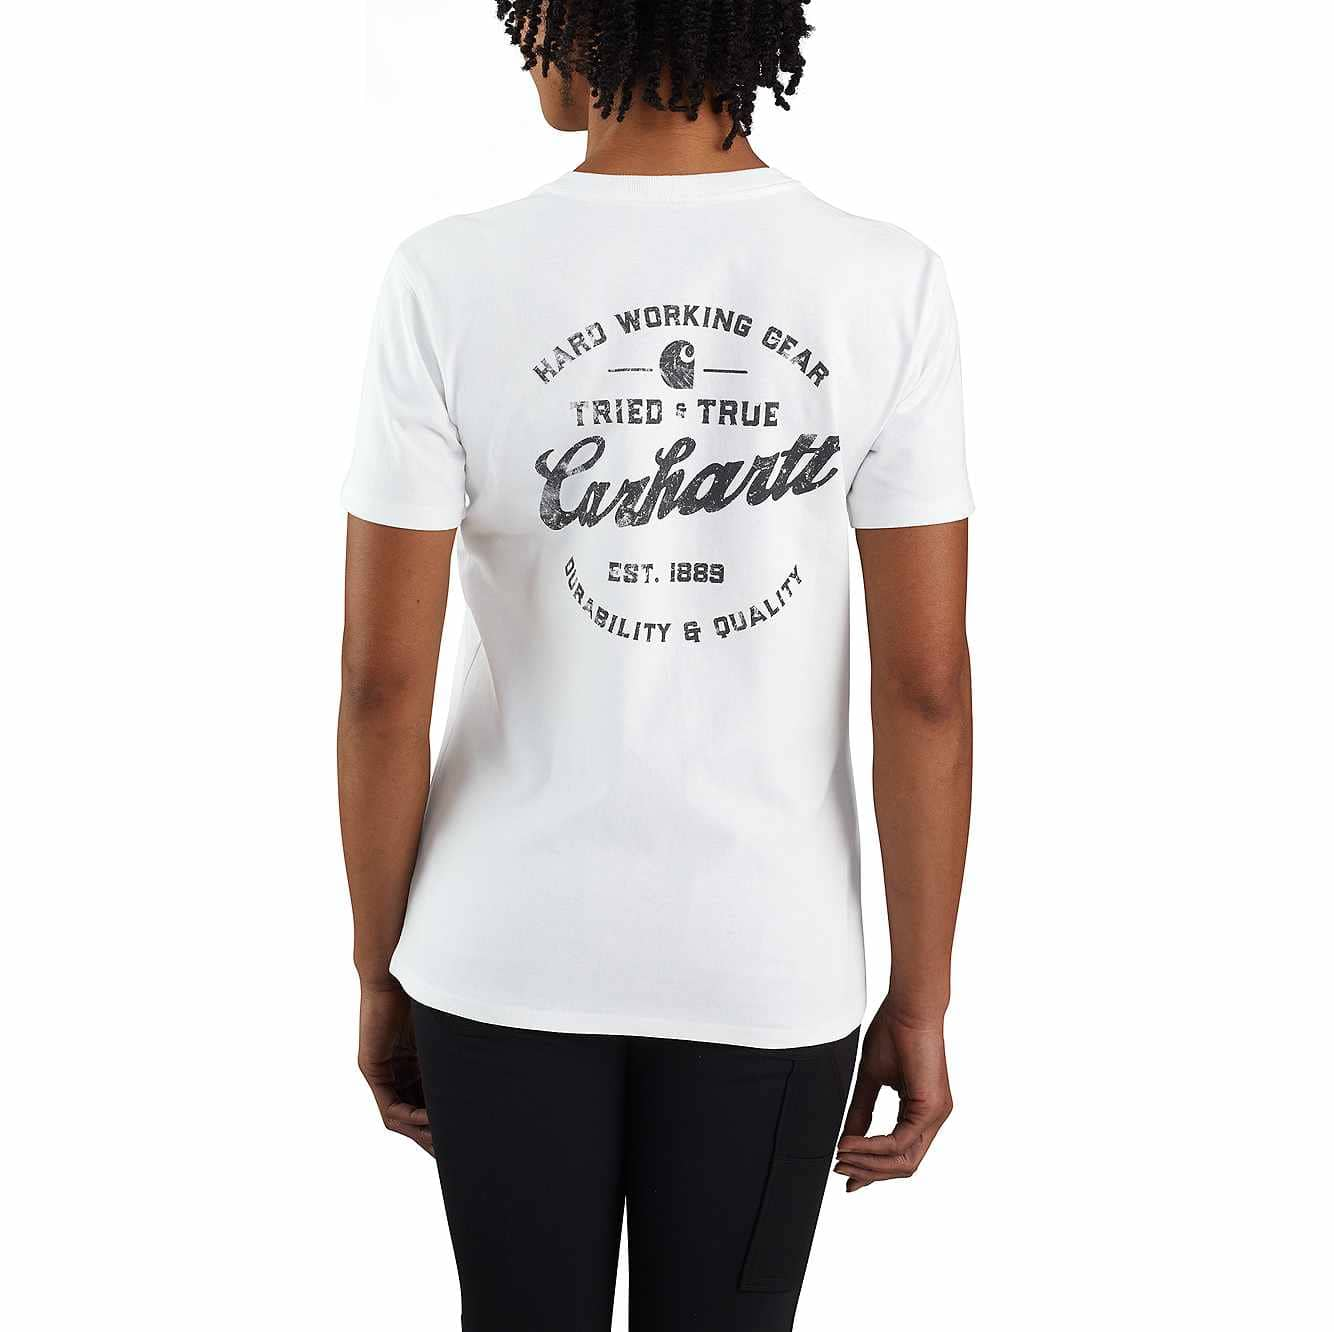 Picture of Loose Fit Heavyweight Short-Sleeve Pocket Tried and True Graphic T-Shirt in White